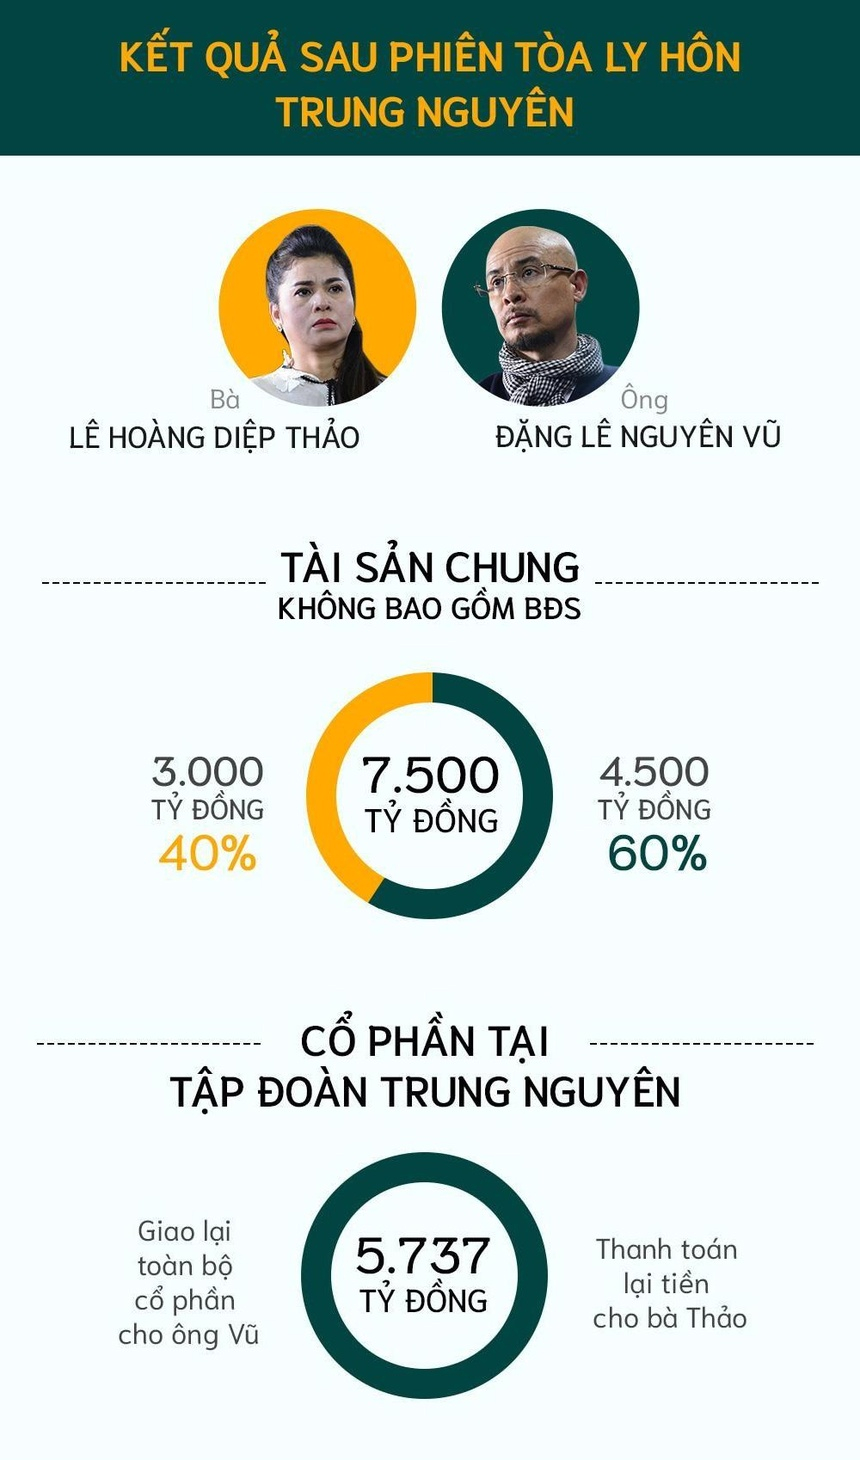 Trung Nguyen duoc dinh gia 5.700 ty dong, dat hay re? hinh anh 3